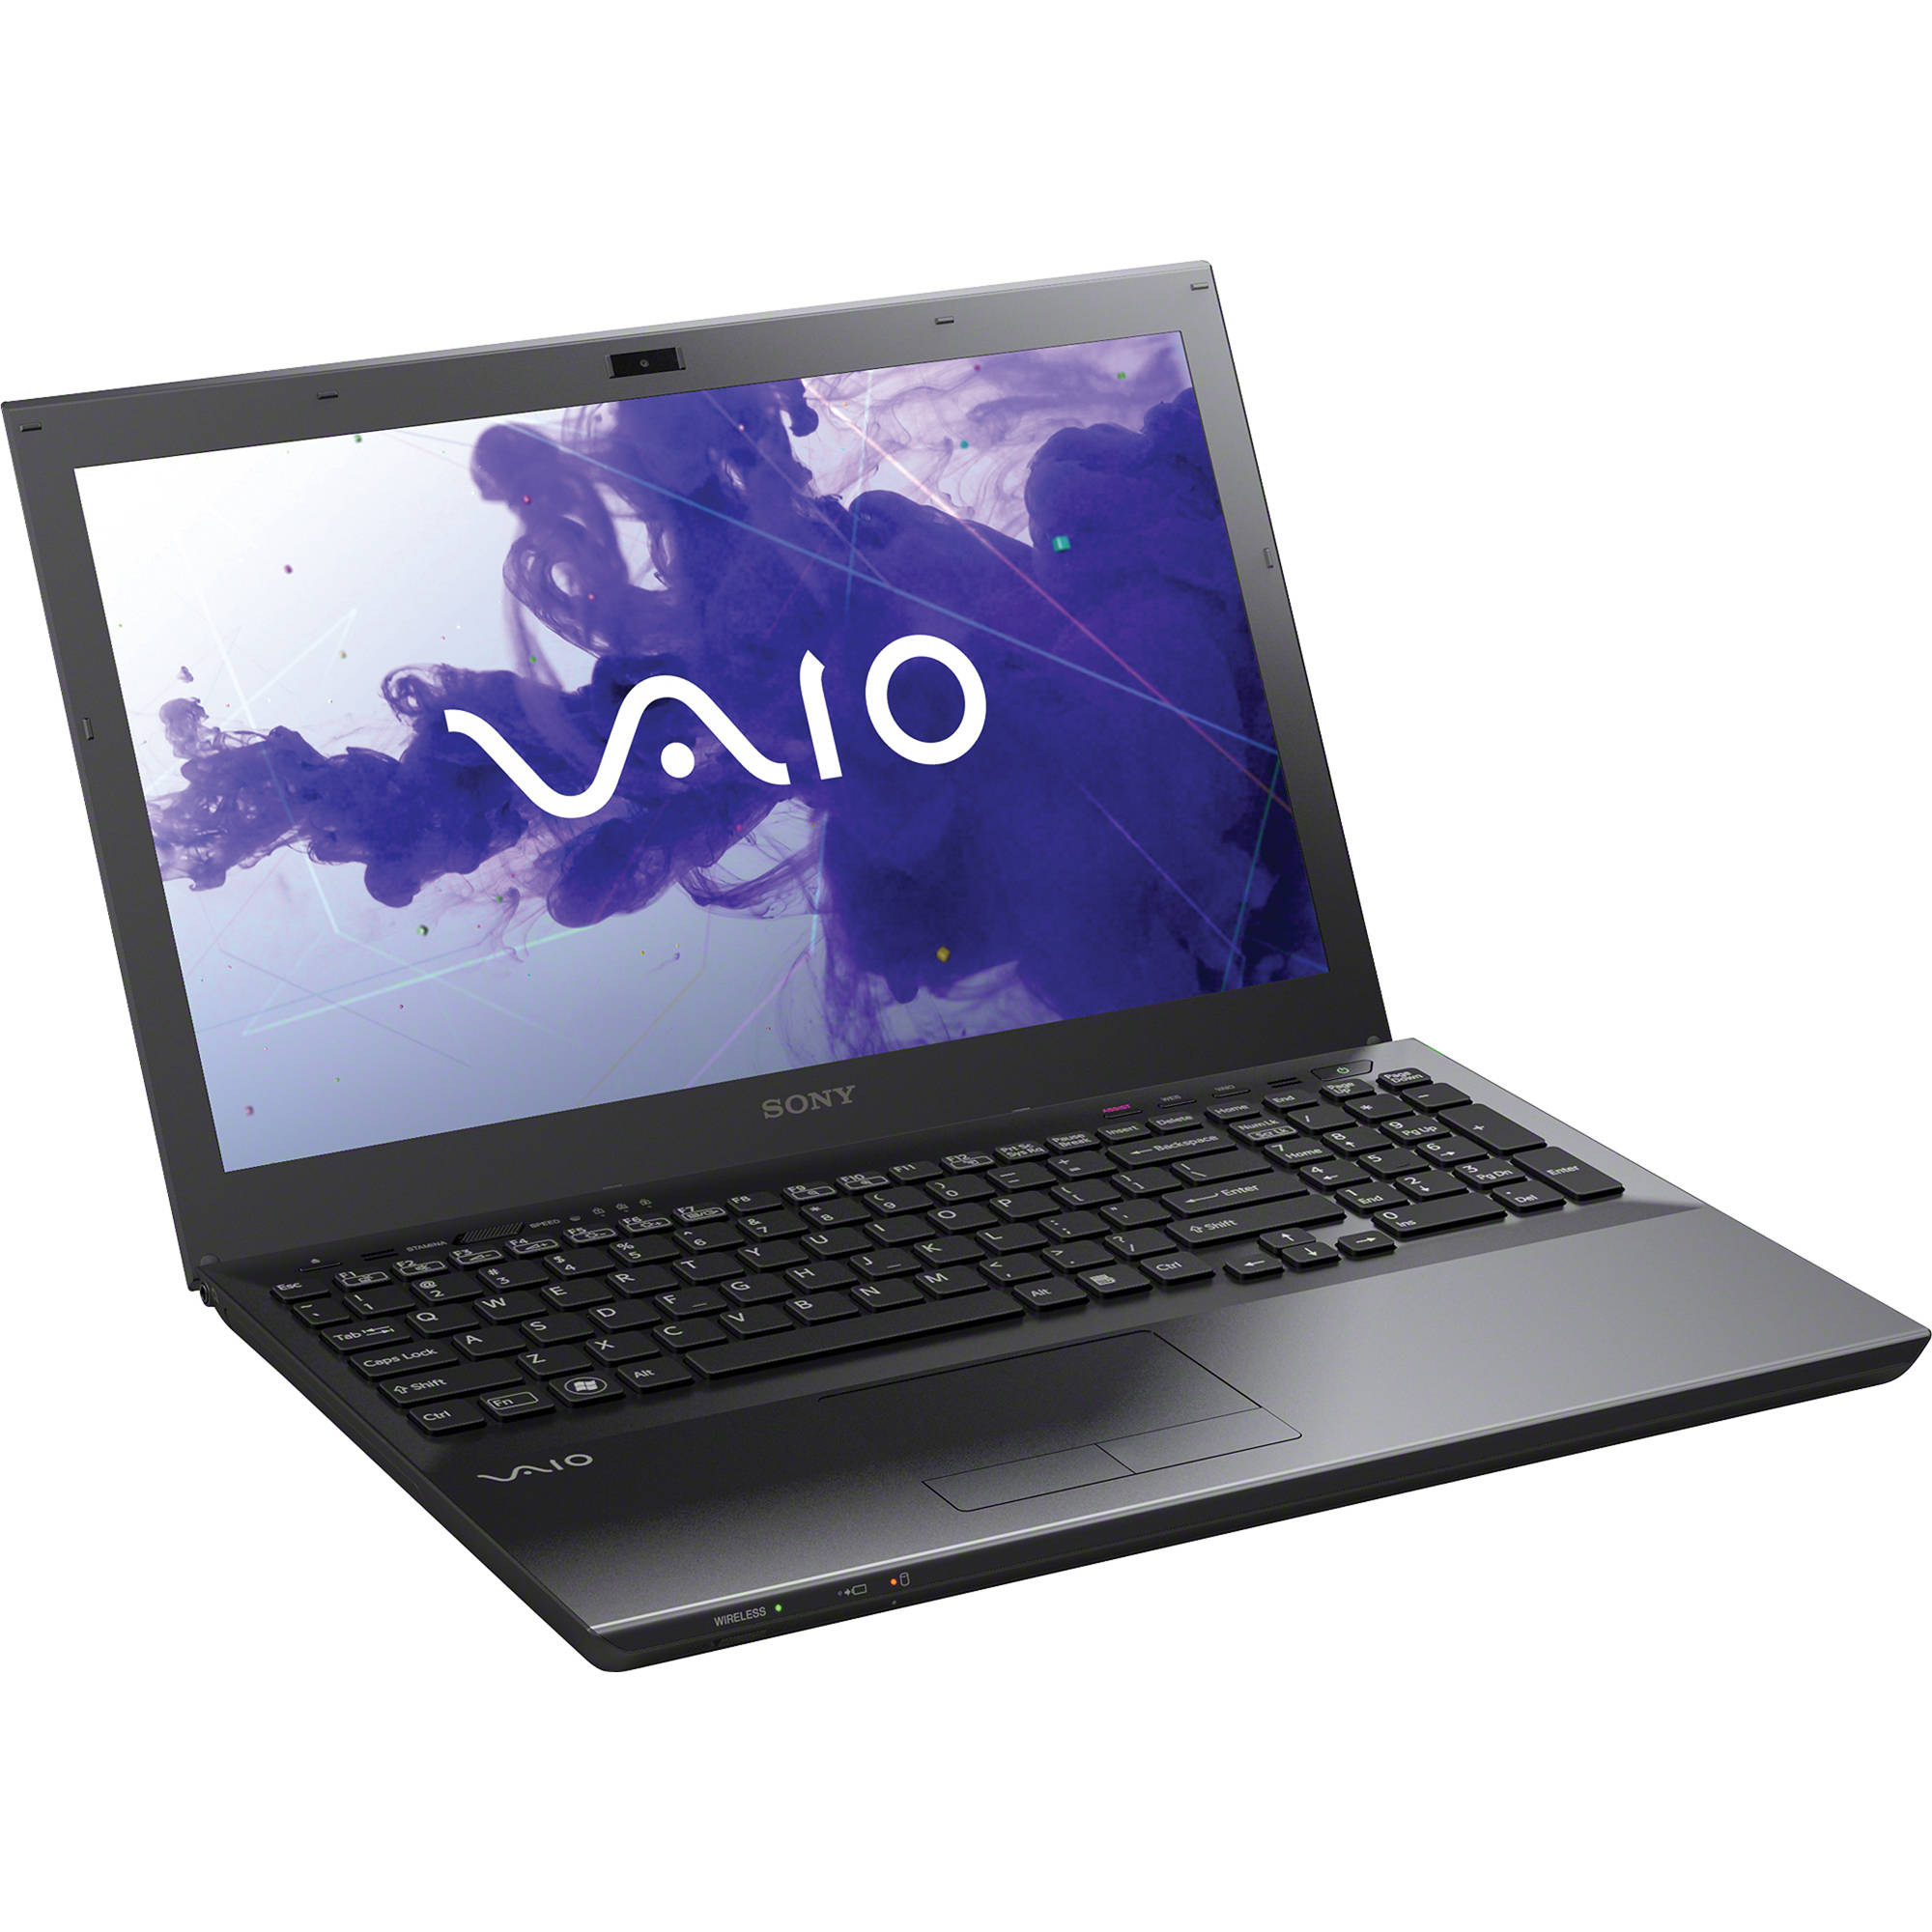 Sony Vaio VPCSE27FX/B Driver for Windows Mac